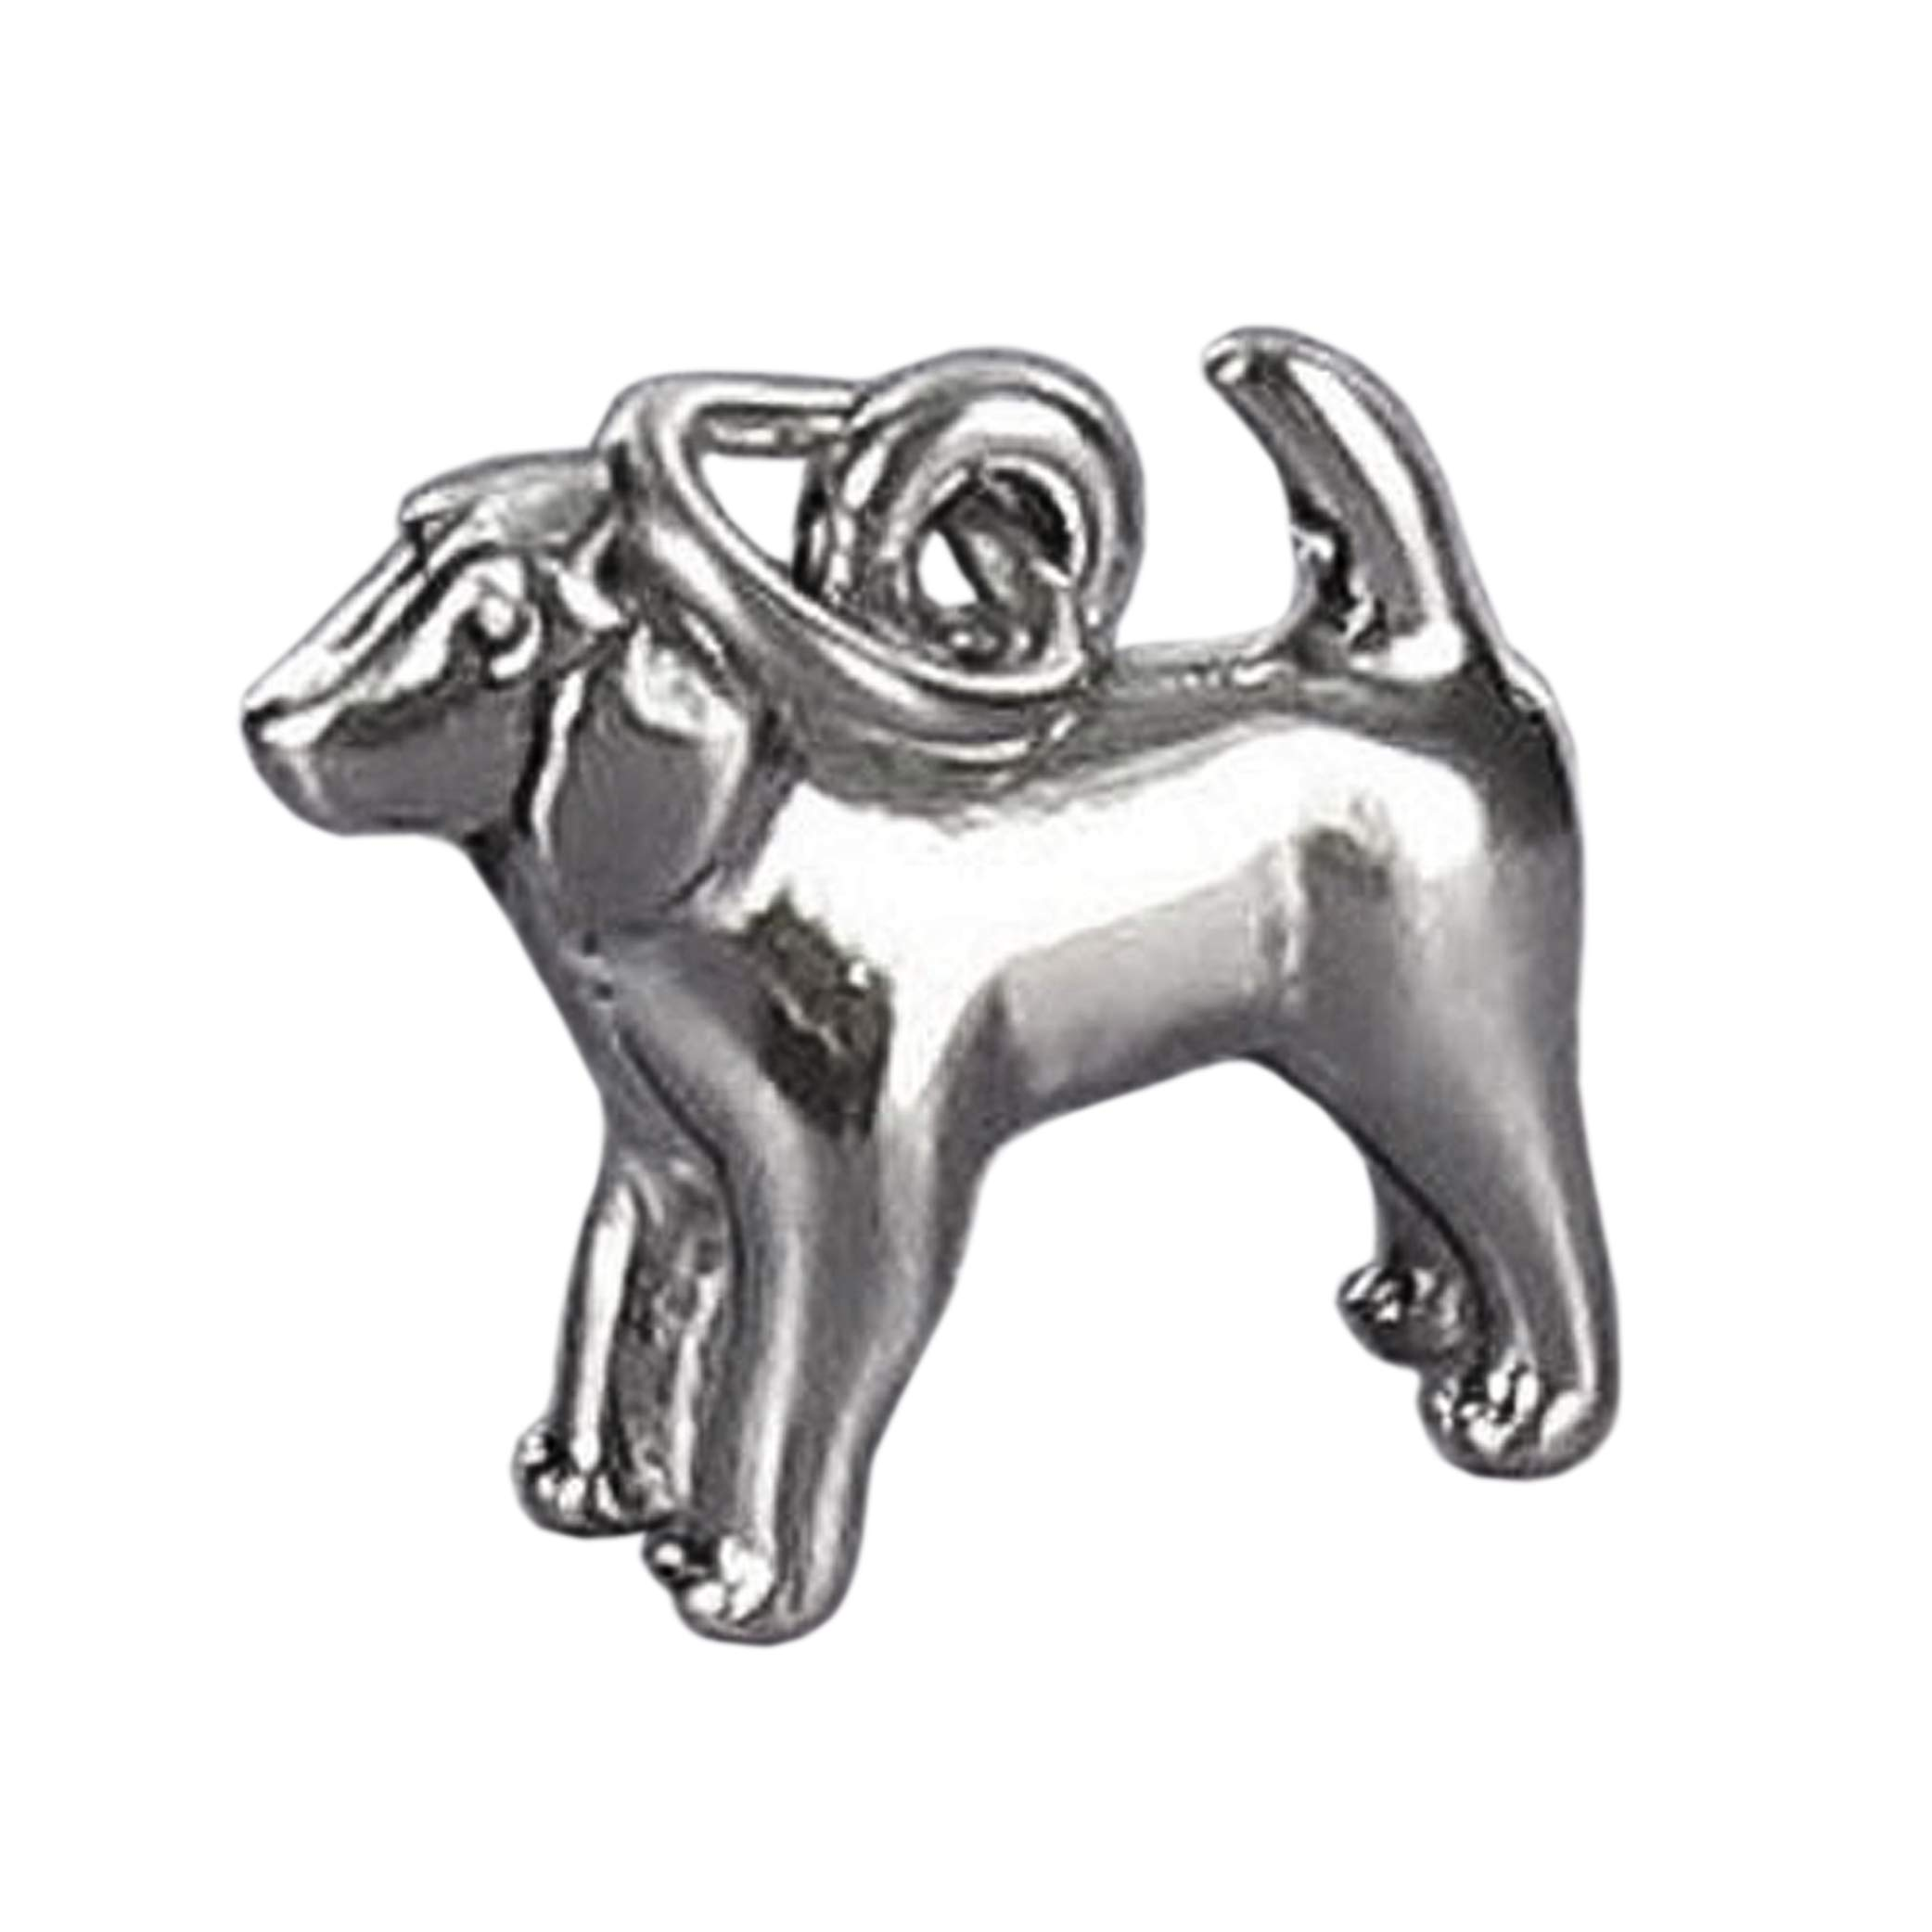 Spaniel Dog Charm Sterling Silver 925 for Bracelet Short Hair Pet Puppy Brittany Jewelry Making Supply, Pendant, Charms, Bracelet, DIY Crafting by Wholesale Charms